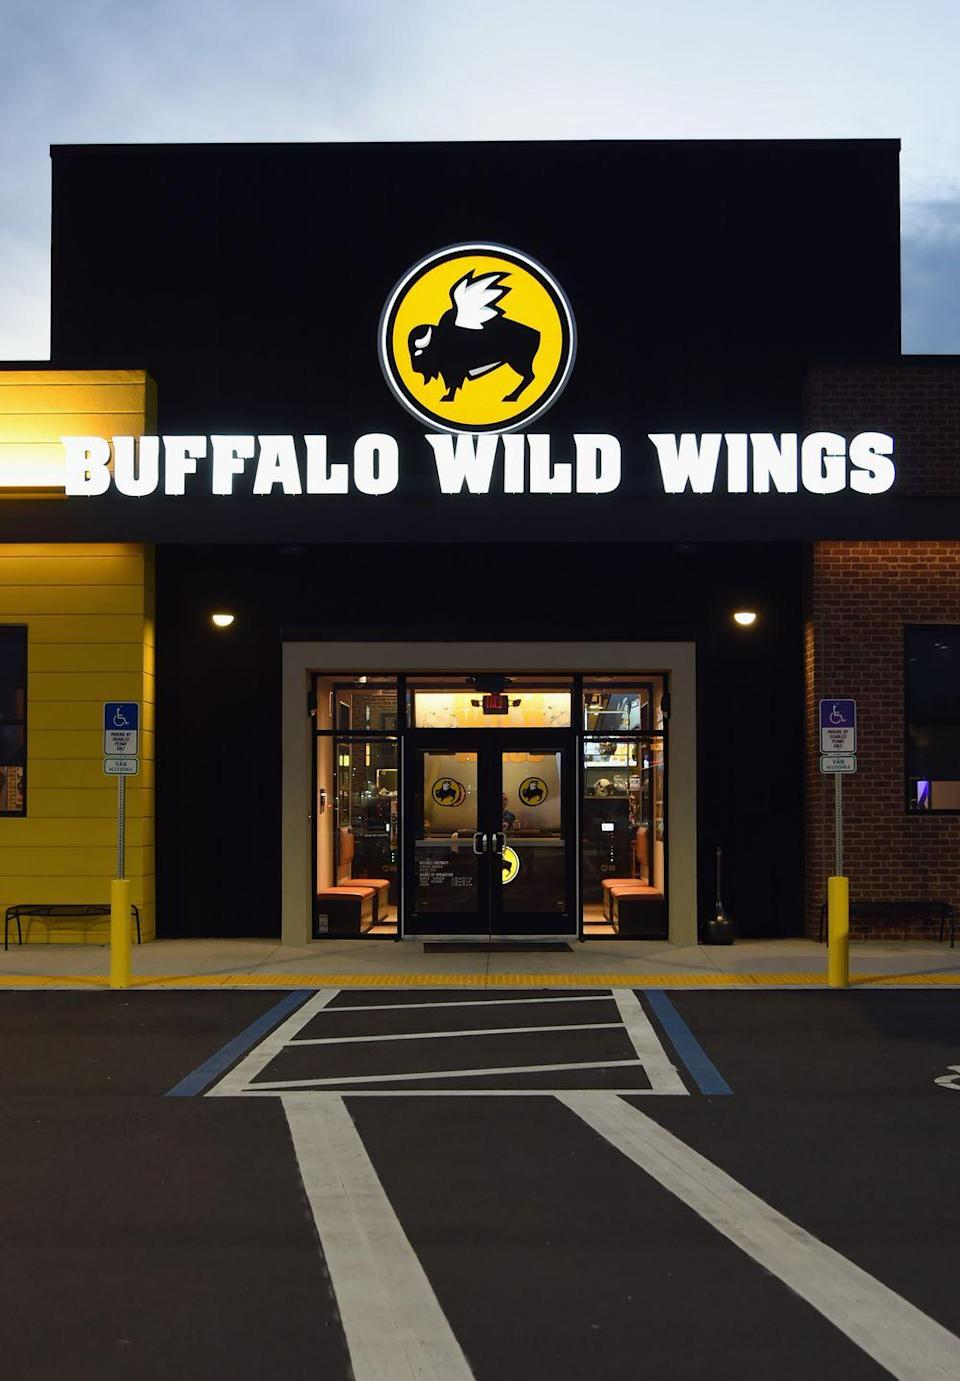 "<p>Craving wings? Stop by select Buffalo Wild Wings locations for some spicy goodness. Juut make sure you find out when the restaurant's <a href=""http://www.storebusinesshours.com/buffalo-wild-wings-hours/"" rel=""nofollow noopener"" target=""_blank"" data-ylk=""slk:reduced holiday hours"" class=""link rapid-noclick-resp"">reduced holiday hours</a> are by checking the online <a href=""https://www.buffalowildwings.com/en/locations/"" rel=""nofollow noopener"" target=""_blank"" data-ylk=""slk:store locator"" class=""link rapid-noclick-resp"">store locator</a>.</p>"